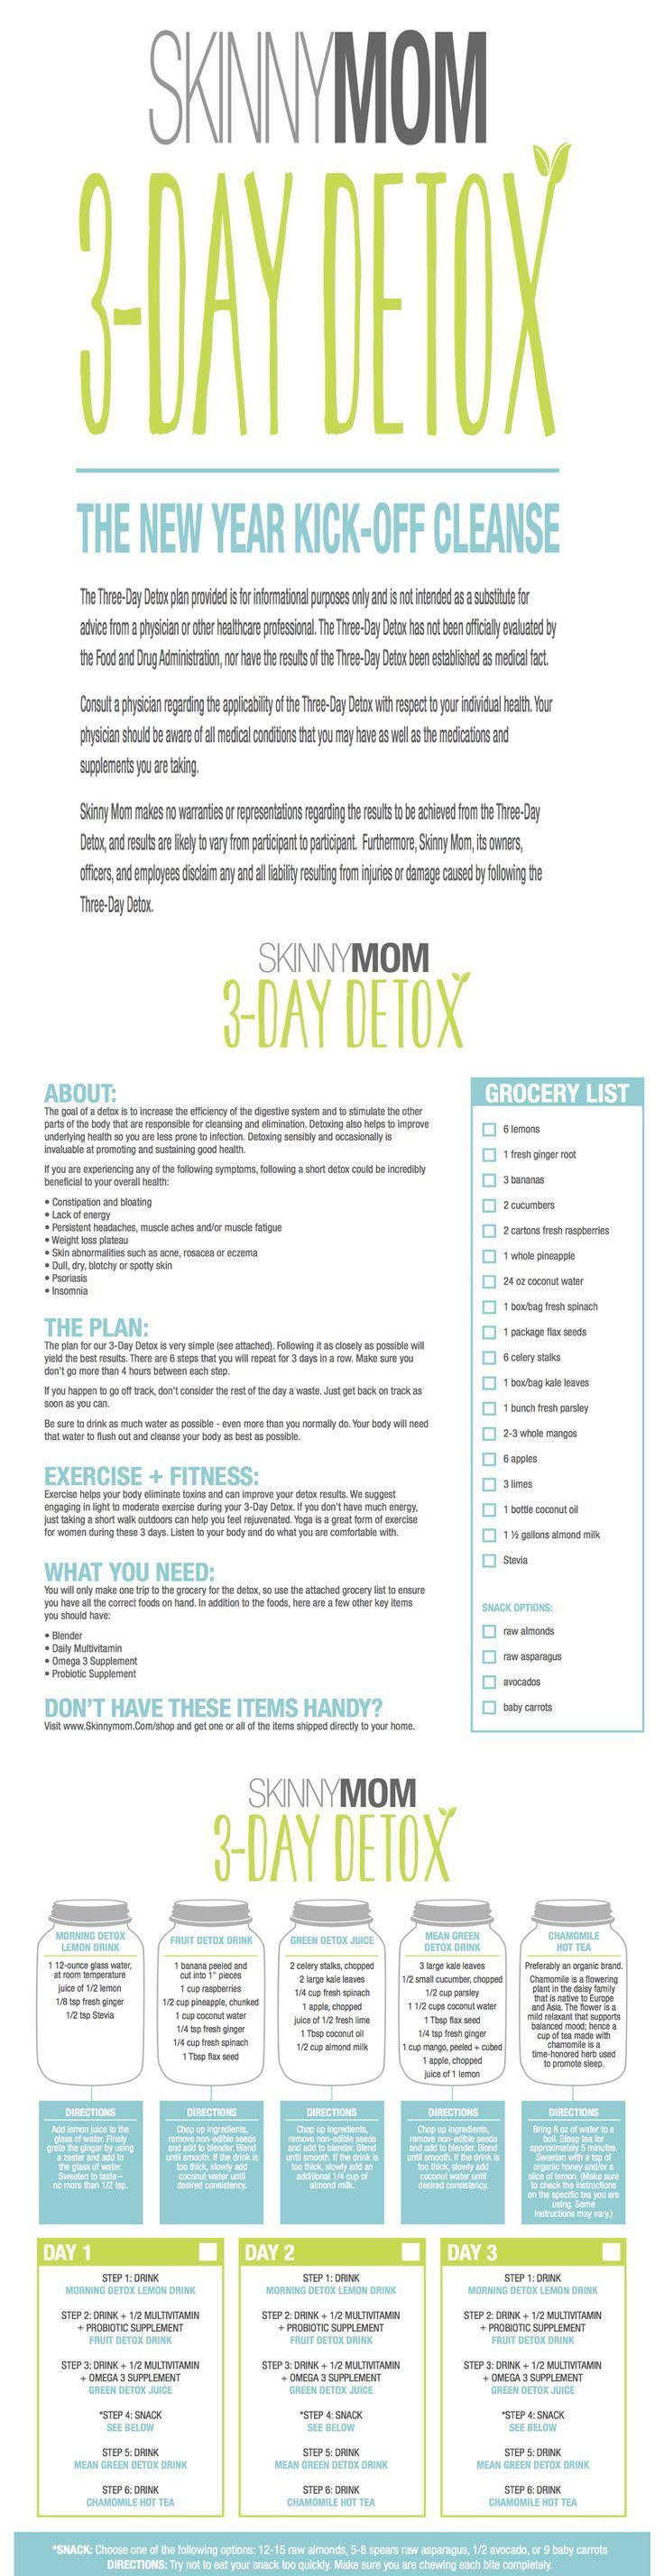 3-Day Detox from Skinny Mom